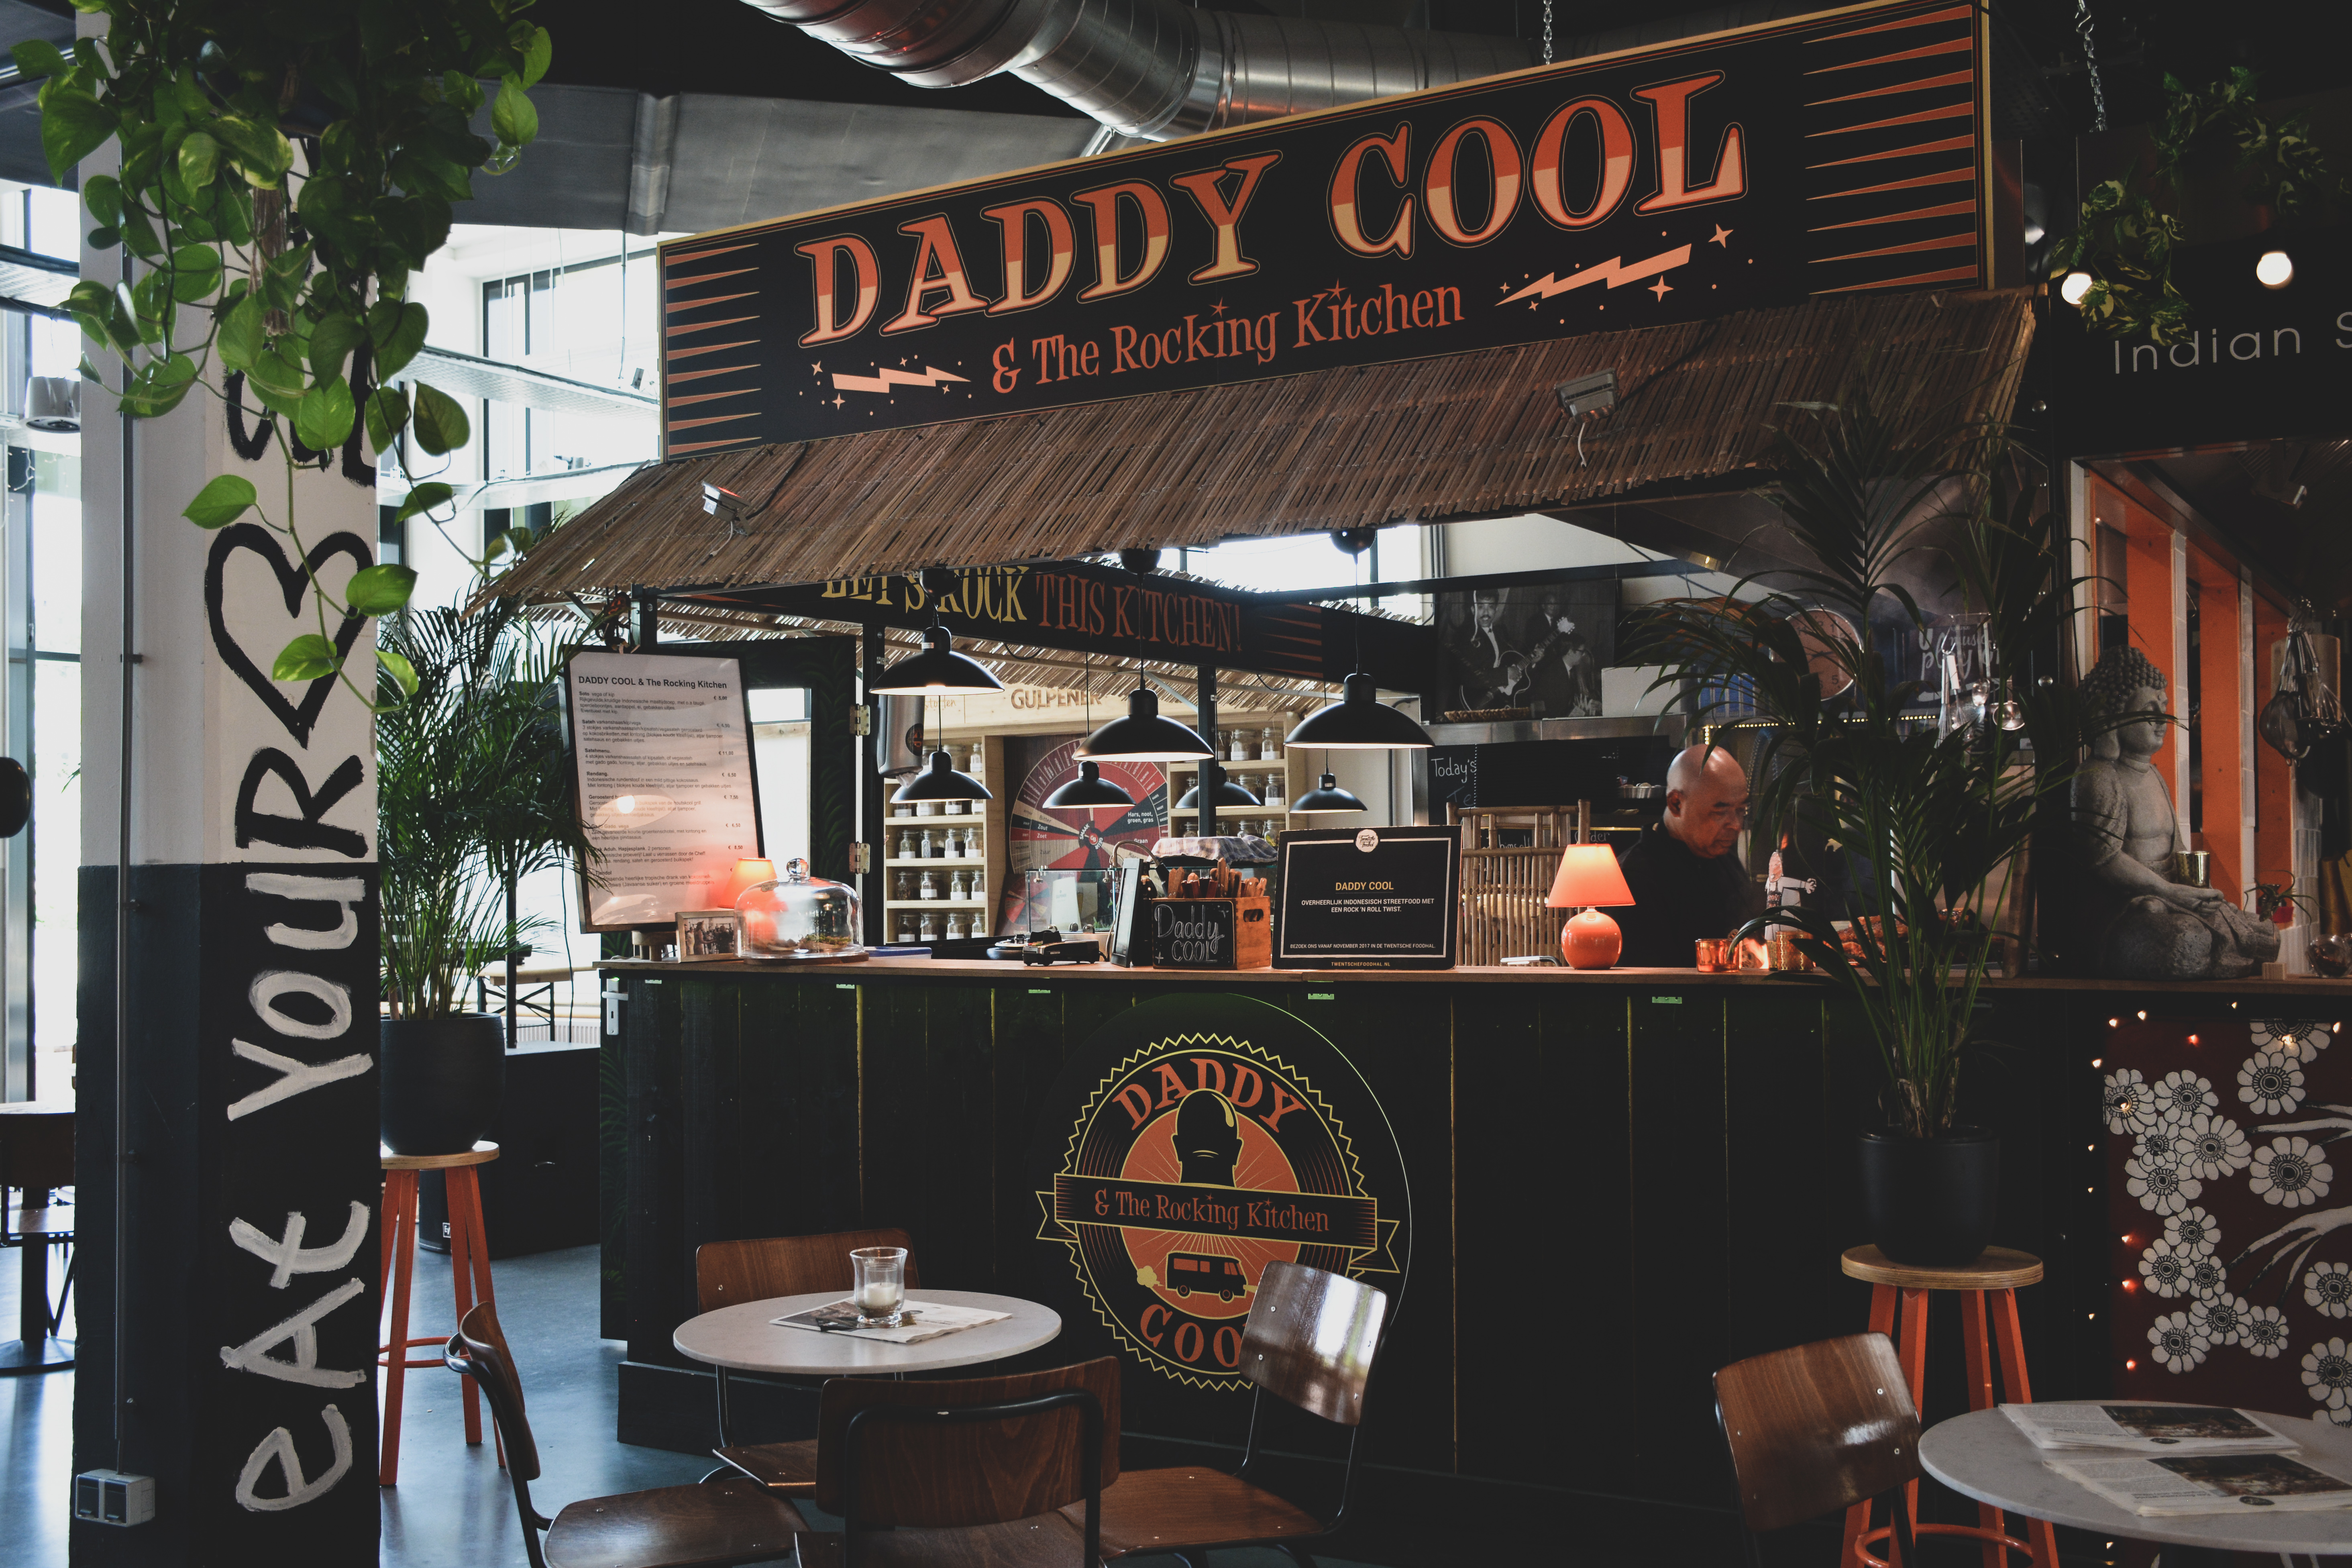 Daddy Cool & The Rocking Kitchen